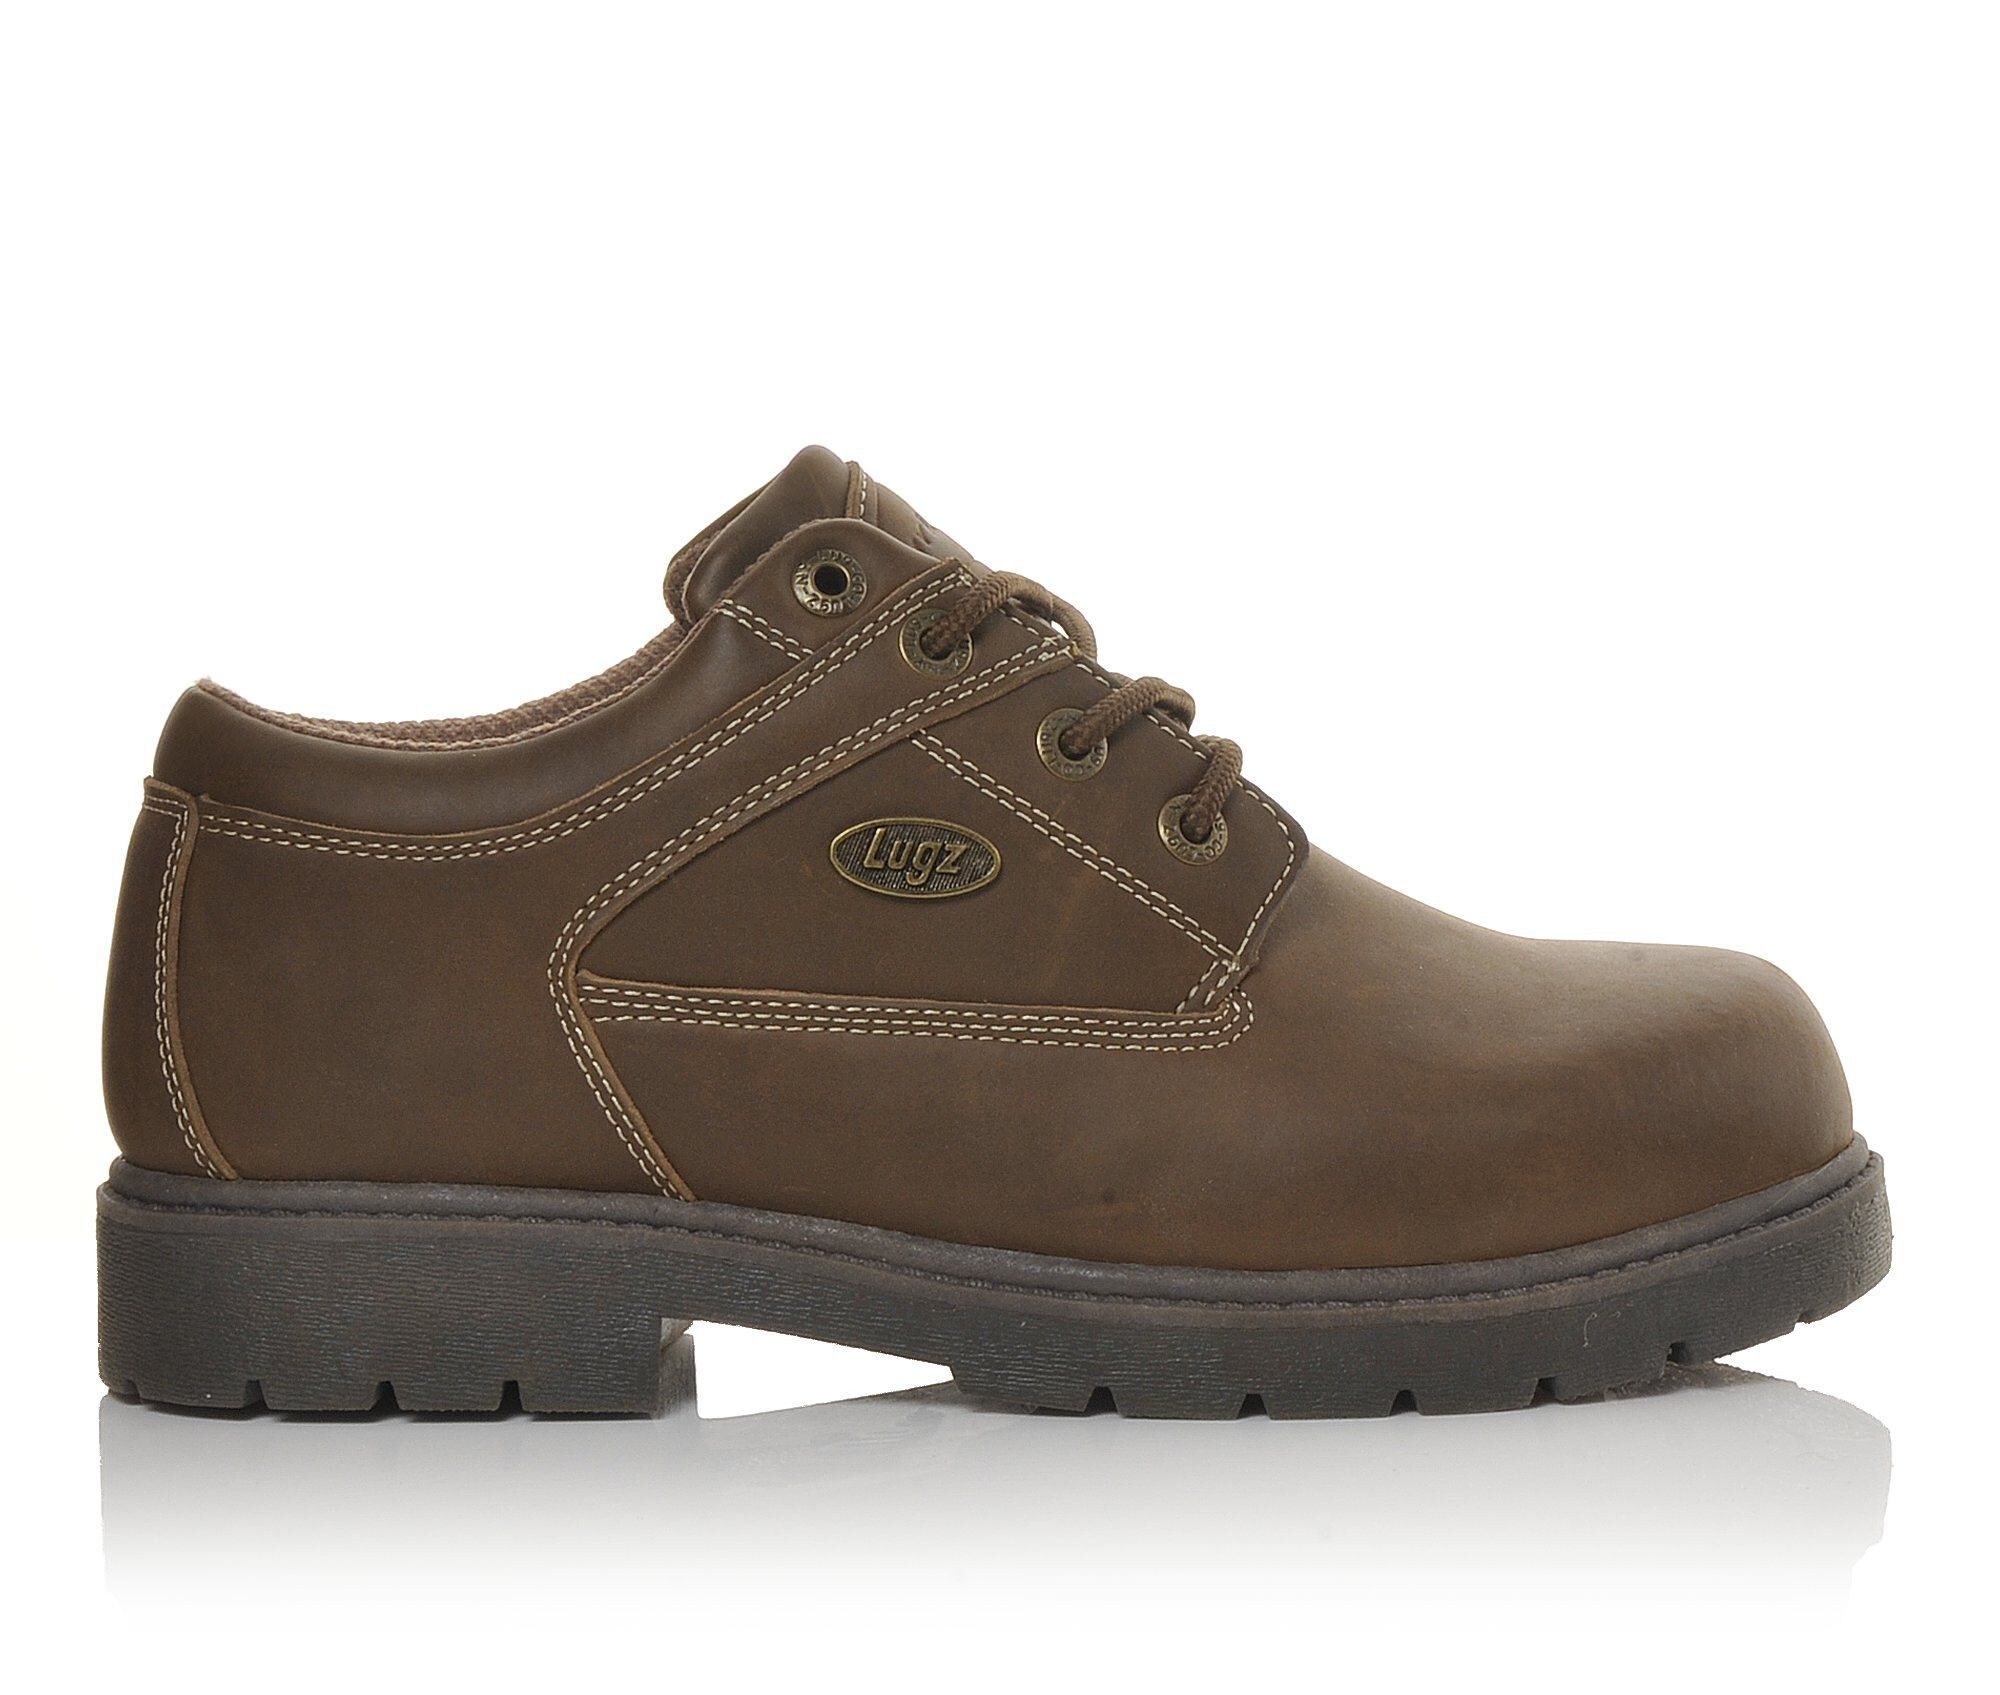 Men's Lugz Savoy Slip Resistant Safety Shoes Brown